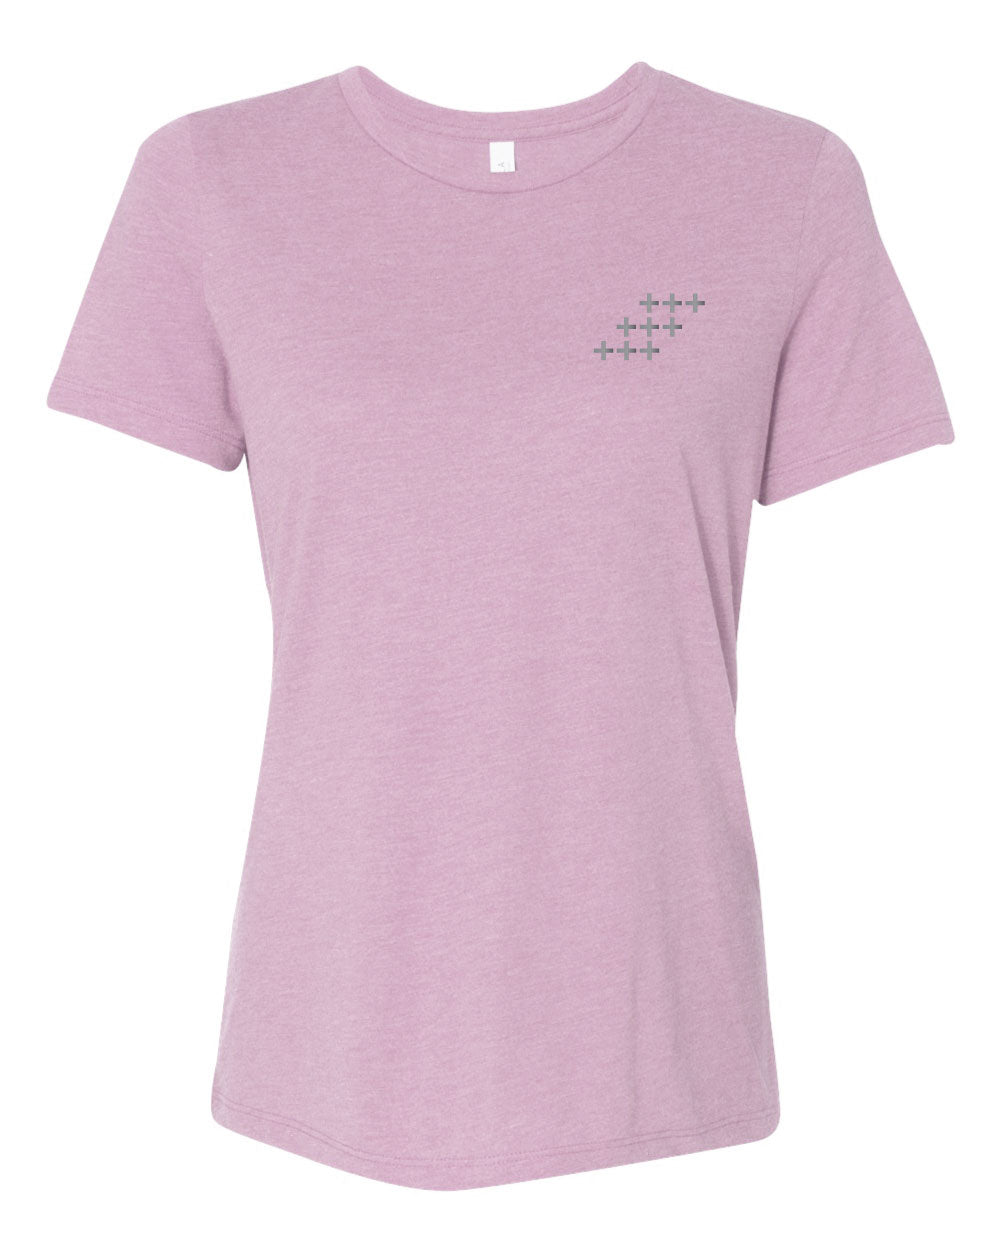 Women's Diamond Cross Tee